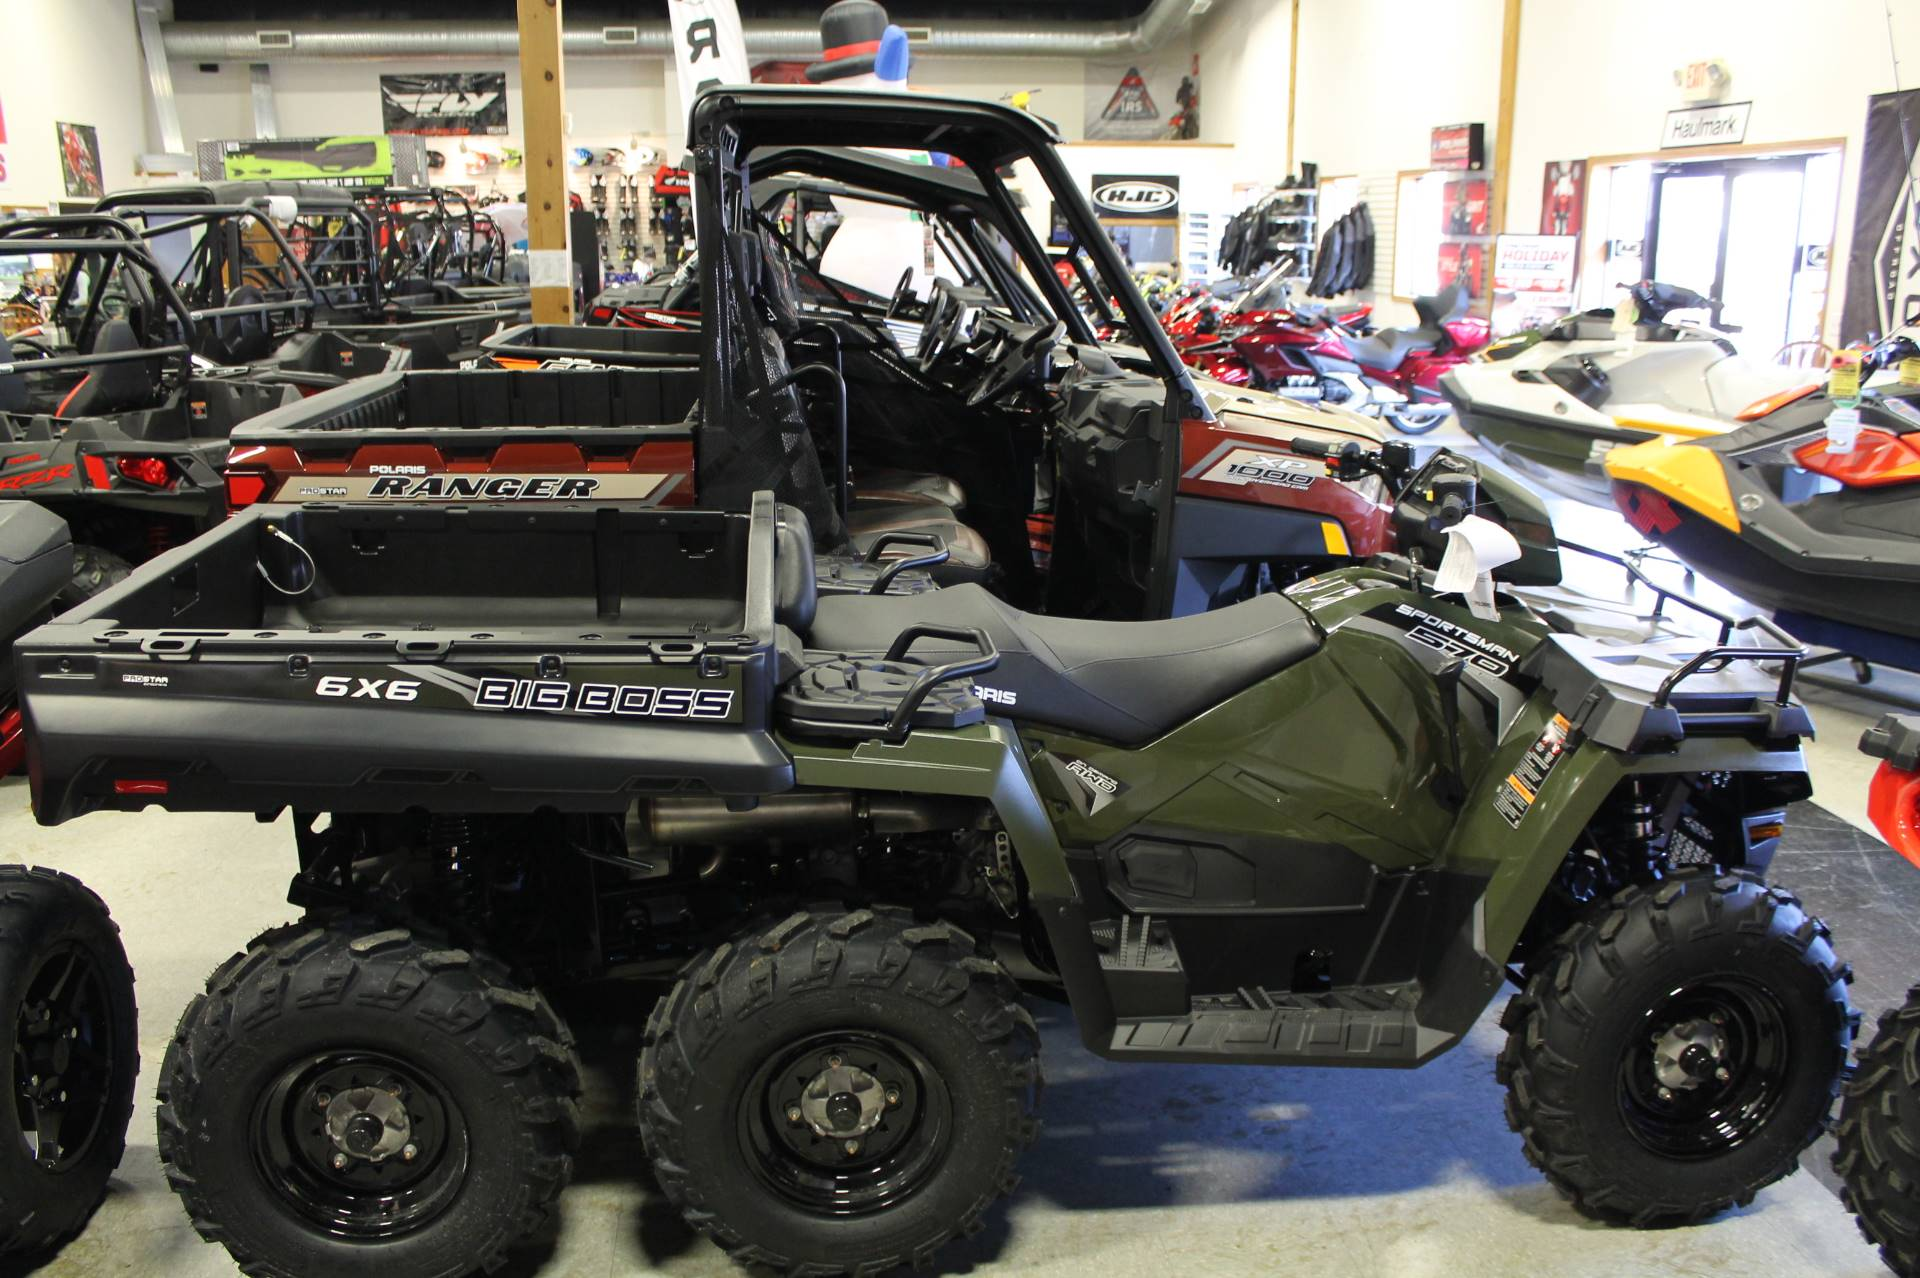 2019 Polaris Sportsman 6x6 570 in Adams, Massachusetts